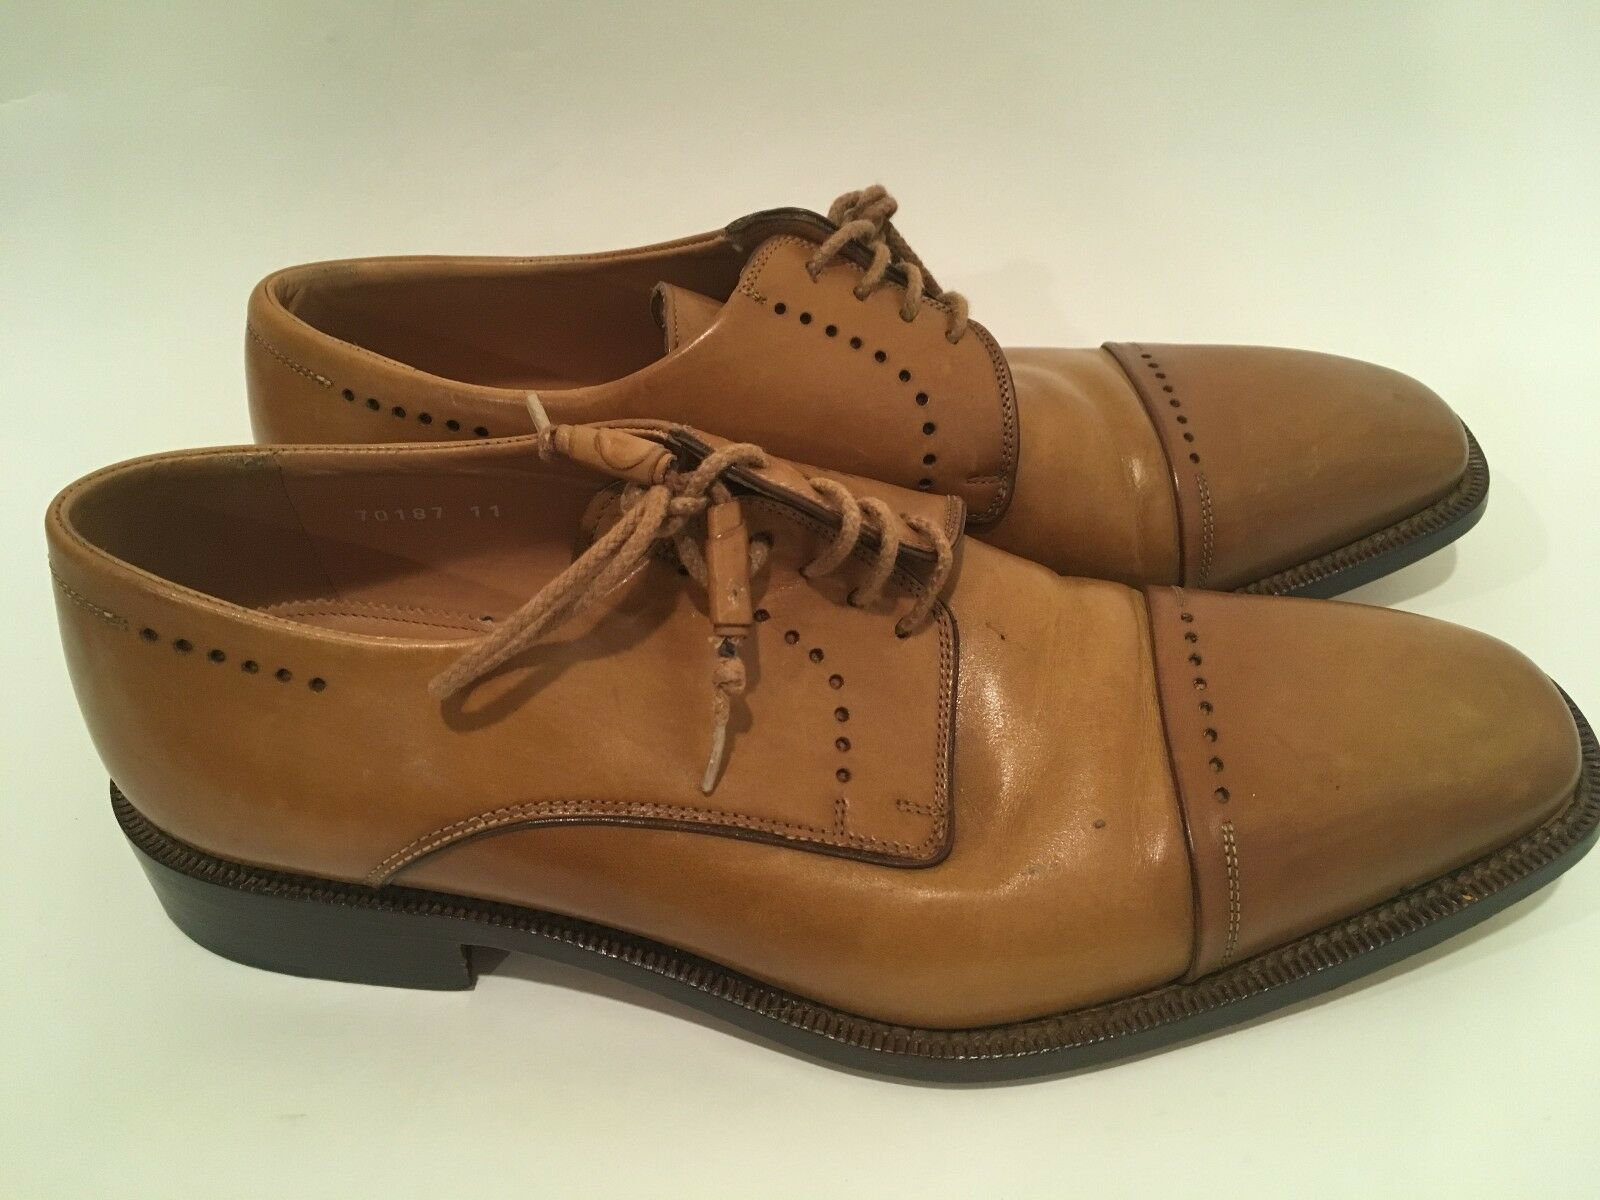 FRATELLI BORGIOLI Mustard Italian Leather Oxfords Dress shoes Hand Made